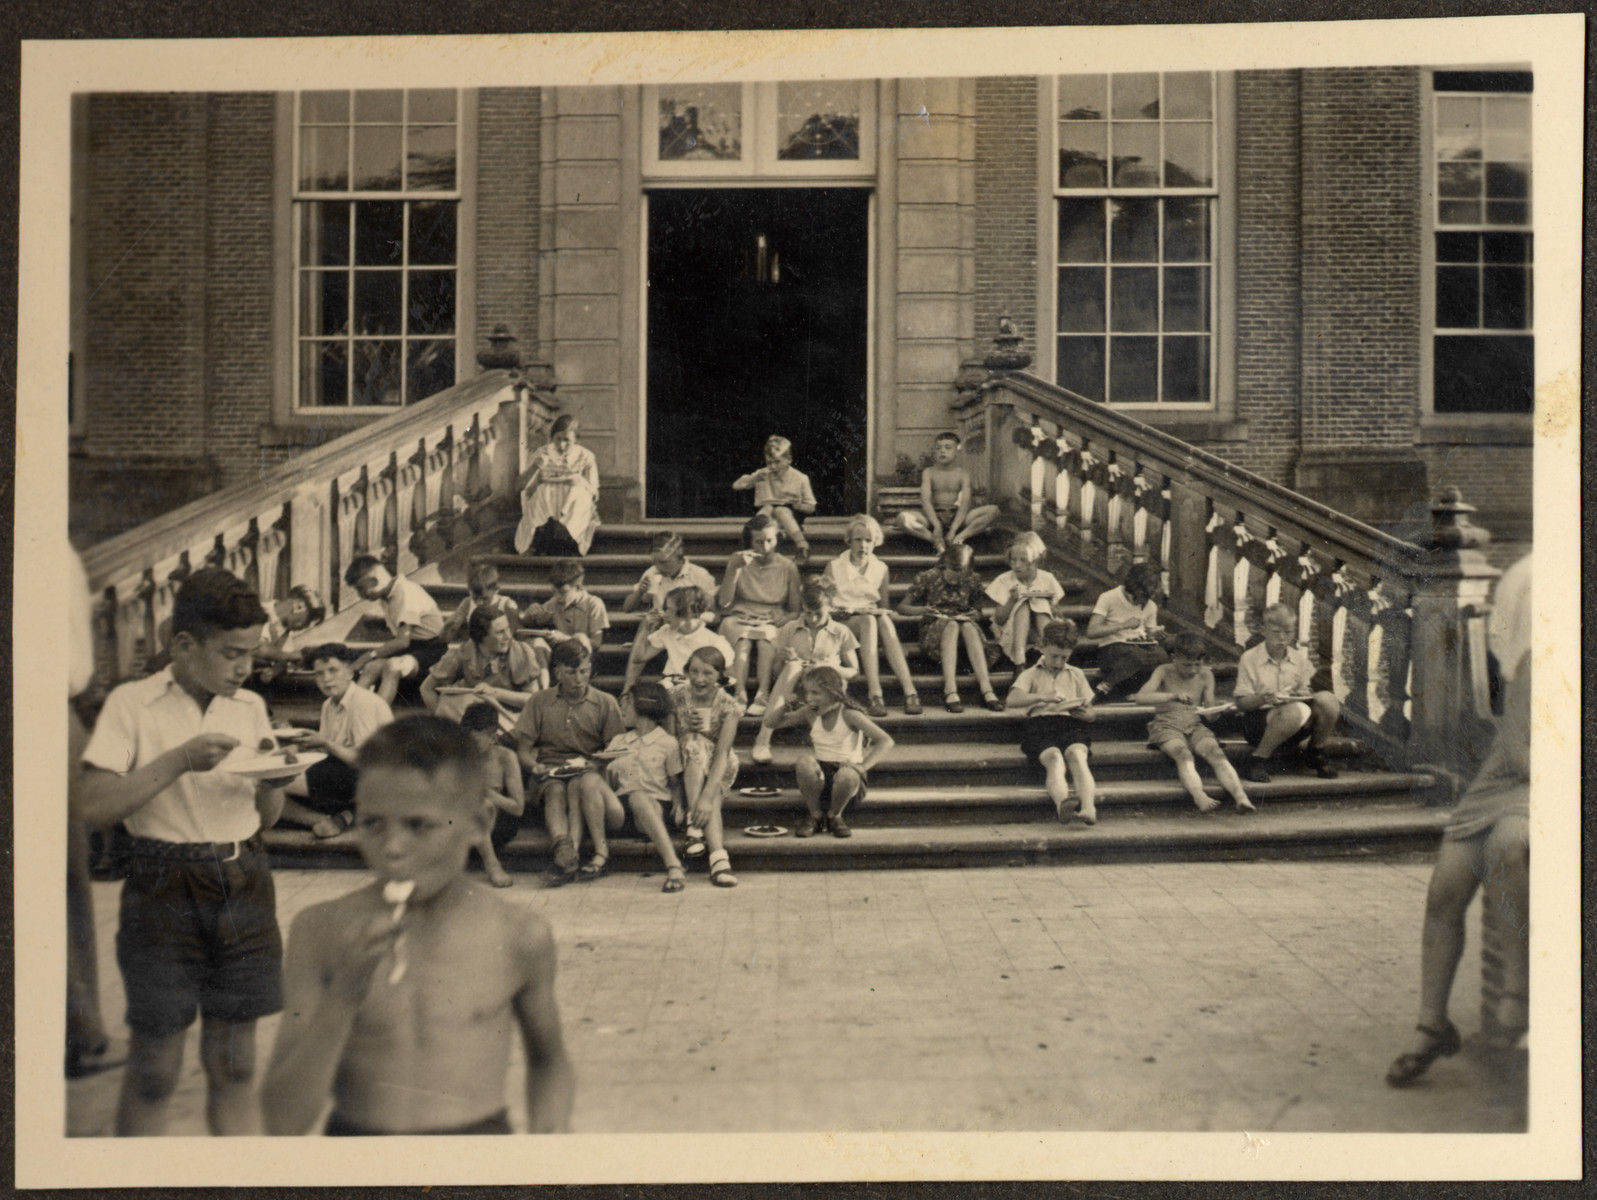 Children, many of them German Jewish refugees, relax on the steps of a Quaker boarding school in Eerde.